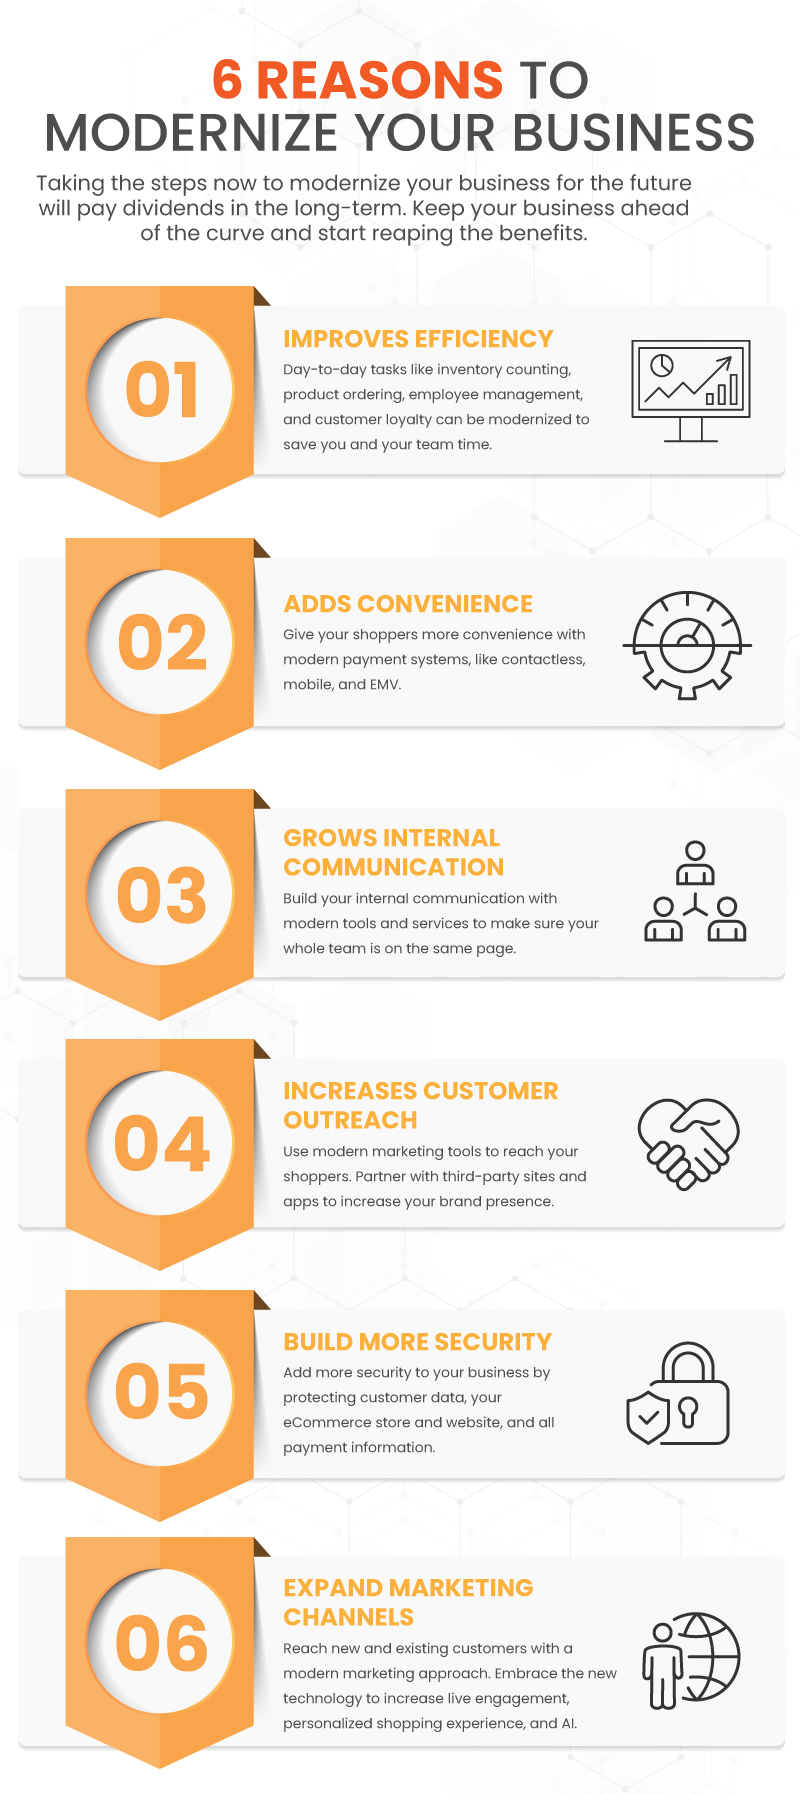 Infographic showing 6 ways that businesses can modernize and stay up with their competition